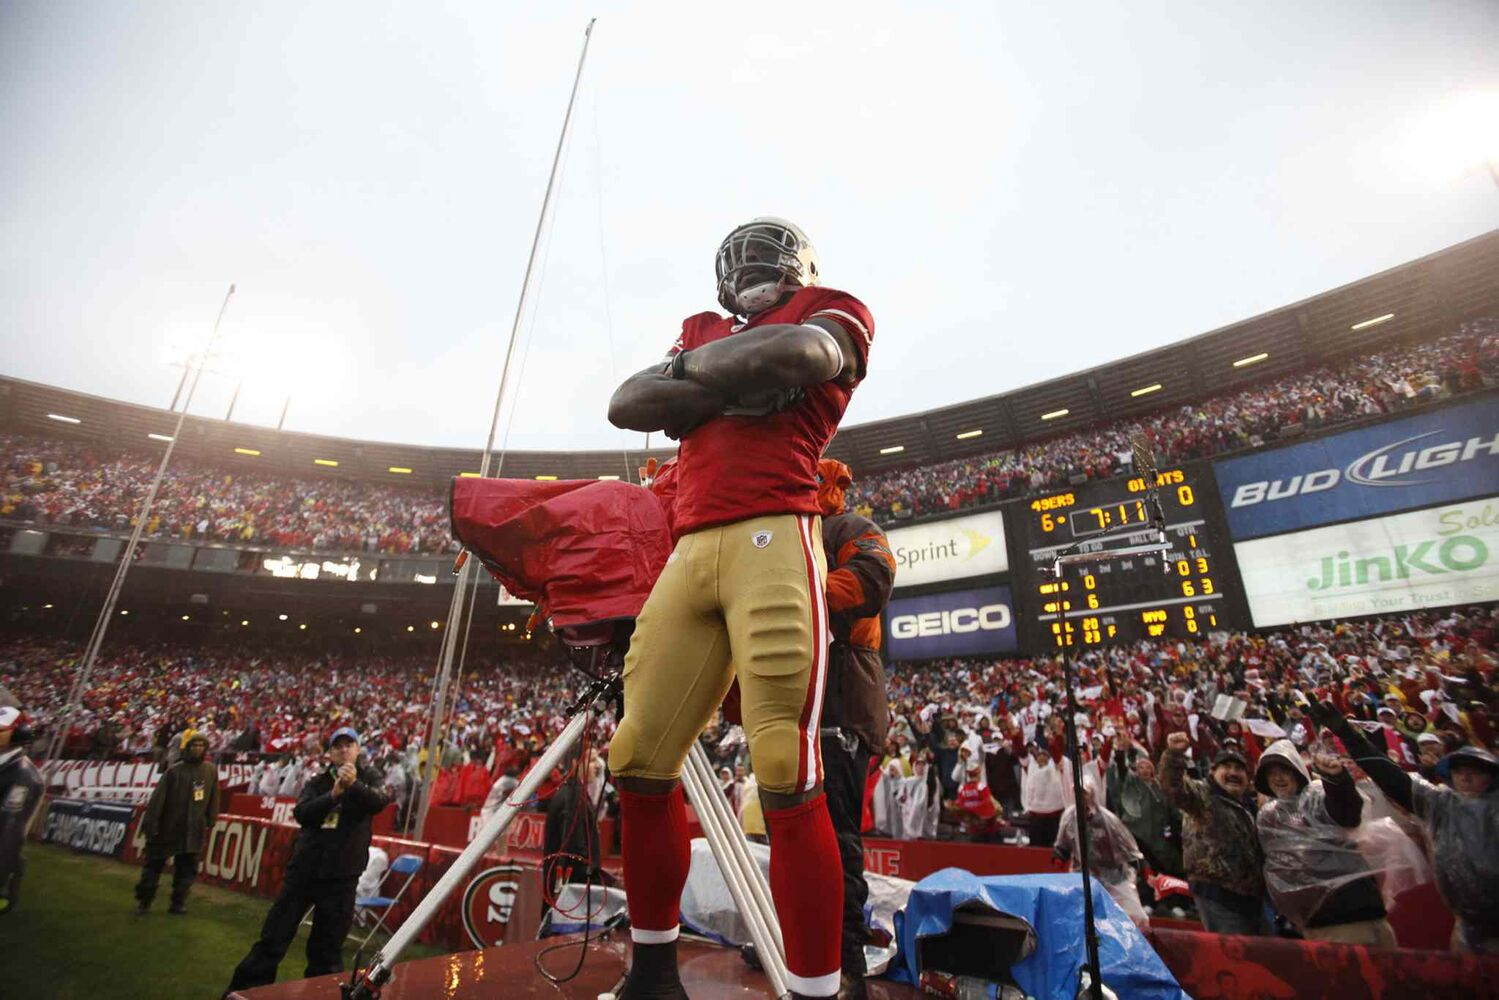 San Francisco 49ers' Vernon Davis (85) climbs a television stand to celebrate his first-quarter touchdown against the New York Giants during their NFC Championship game in January 22 2012. (Nhat V. Meyer / San Jose Mercury News / MCT files)